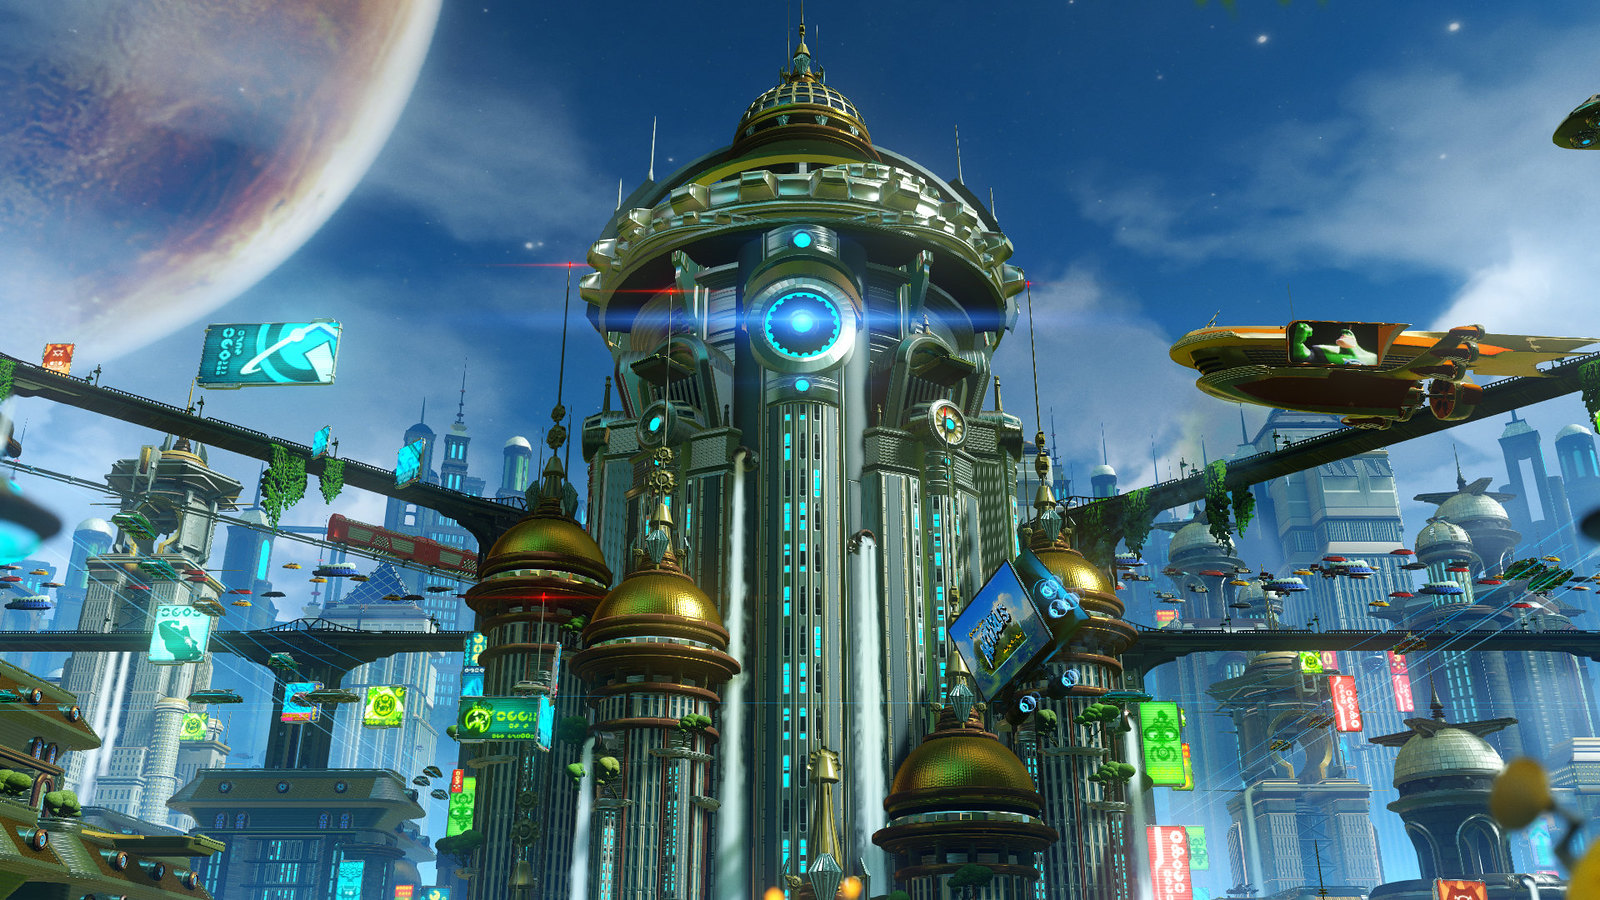 Video Conference Backgrounds - Ratchet and Clank